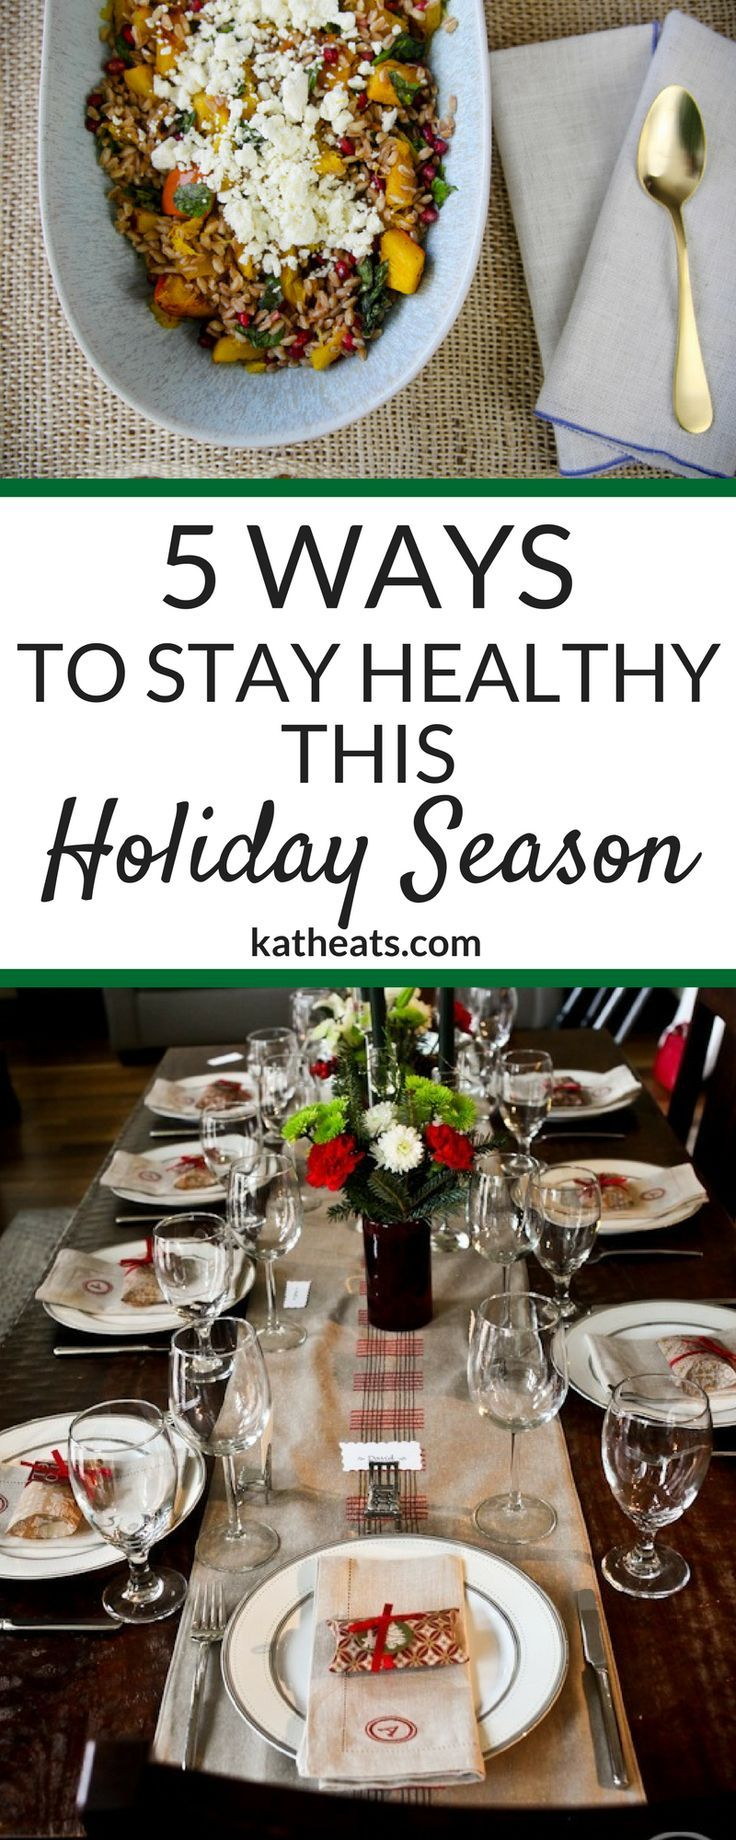 5 Ways To Eat Healthy This Holiday 5 Ways To Eat Healthy This Holiday new photo